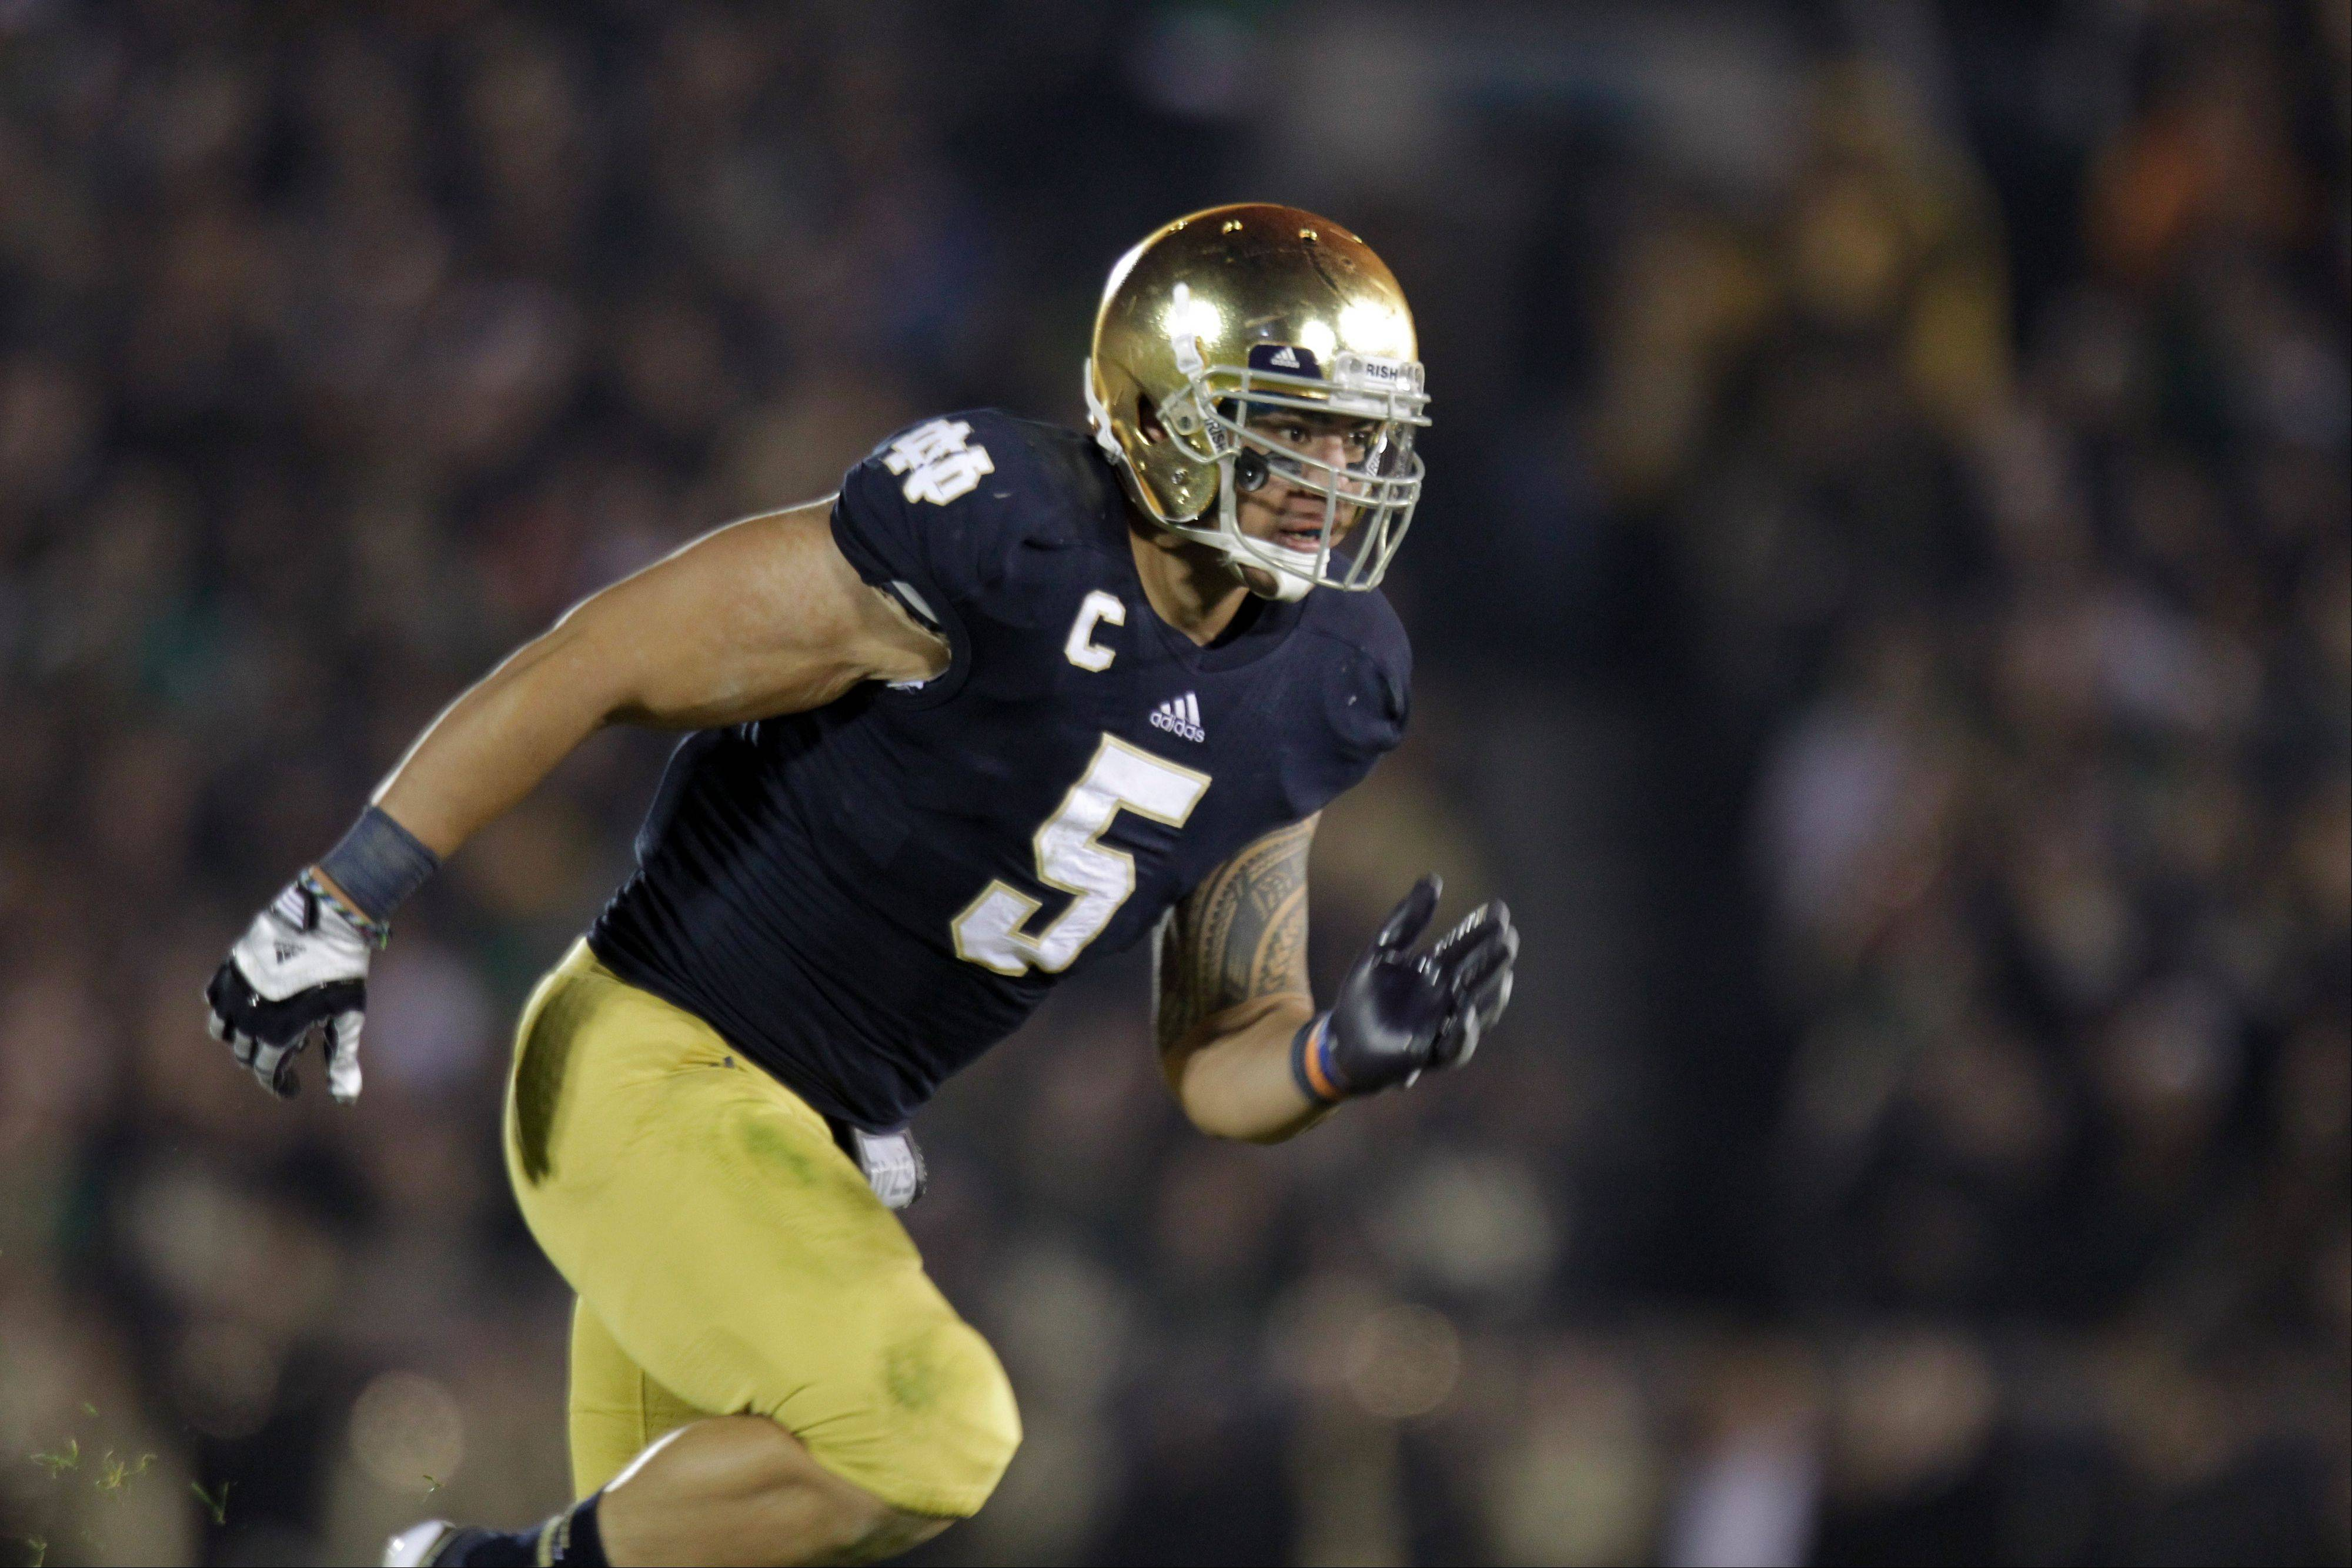 Notre Dame linebacker Manti Te'o is a contender for the Heisman Trophy and a great linebacker, but he won't get Mike Imrem's vote.